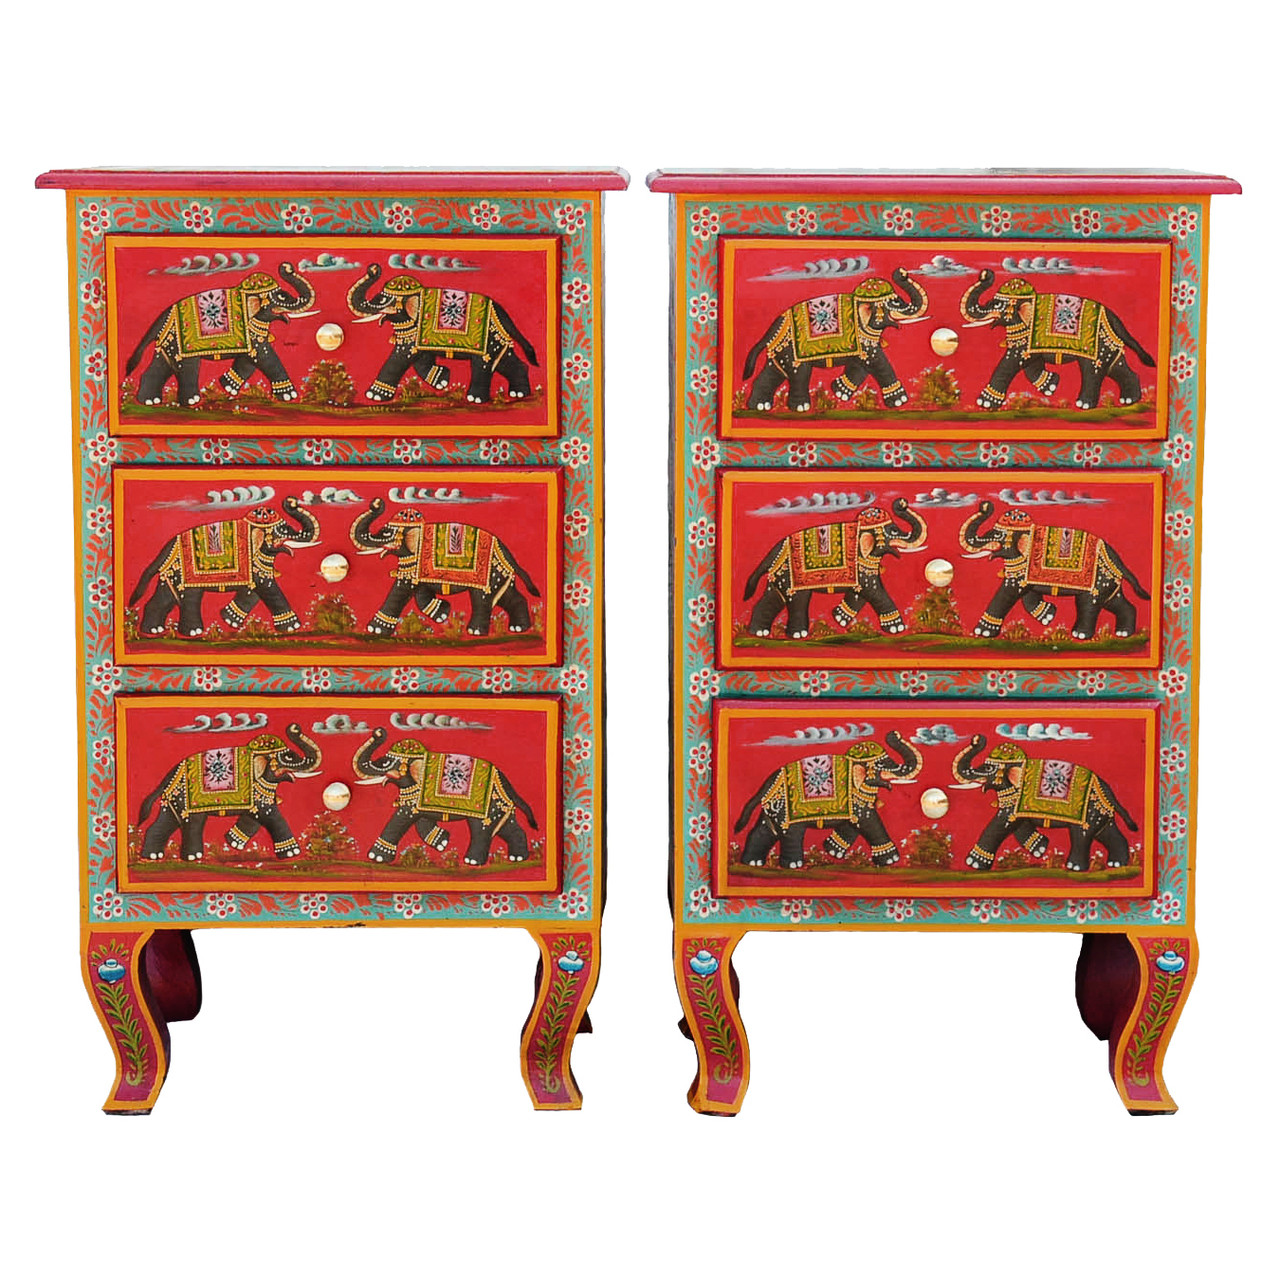 Set of 2 Bedside Cabinets 3 Drawer Red Elephant Design  sc 1 st  Present Company & Set of 2 Bedside Cabinets 3 Drawer Red Elephant Design - Fair Trade ...